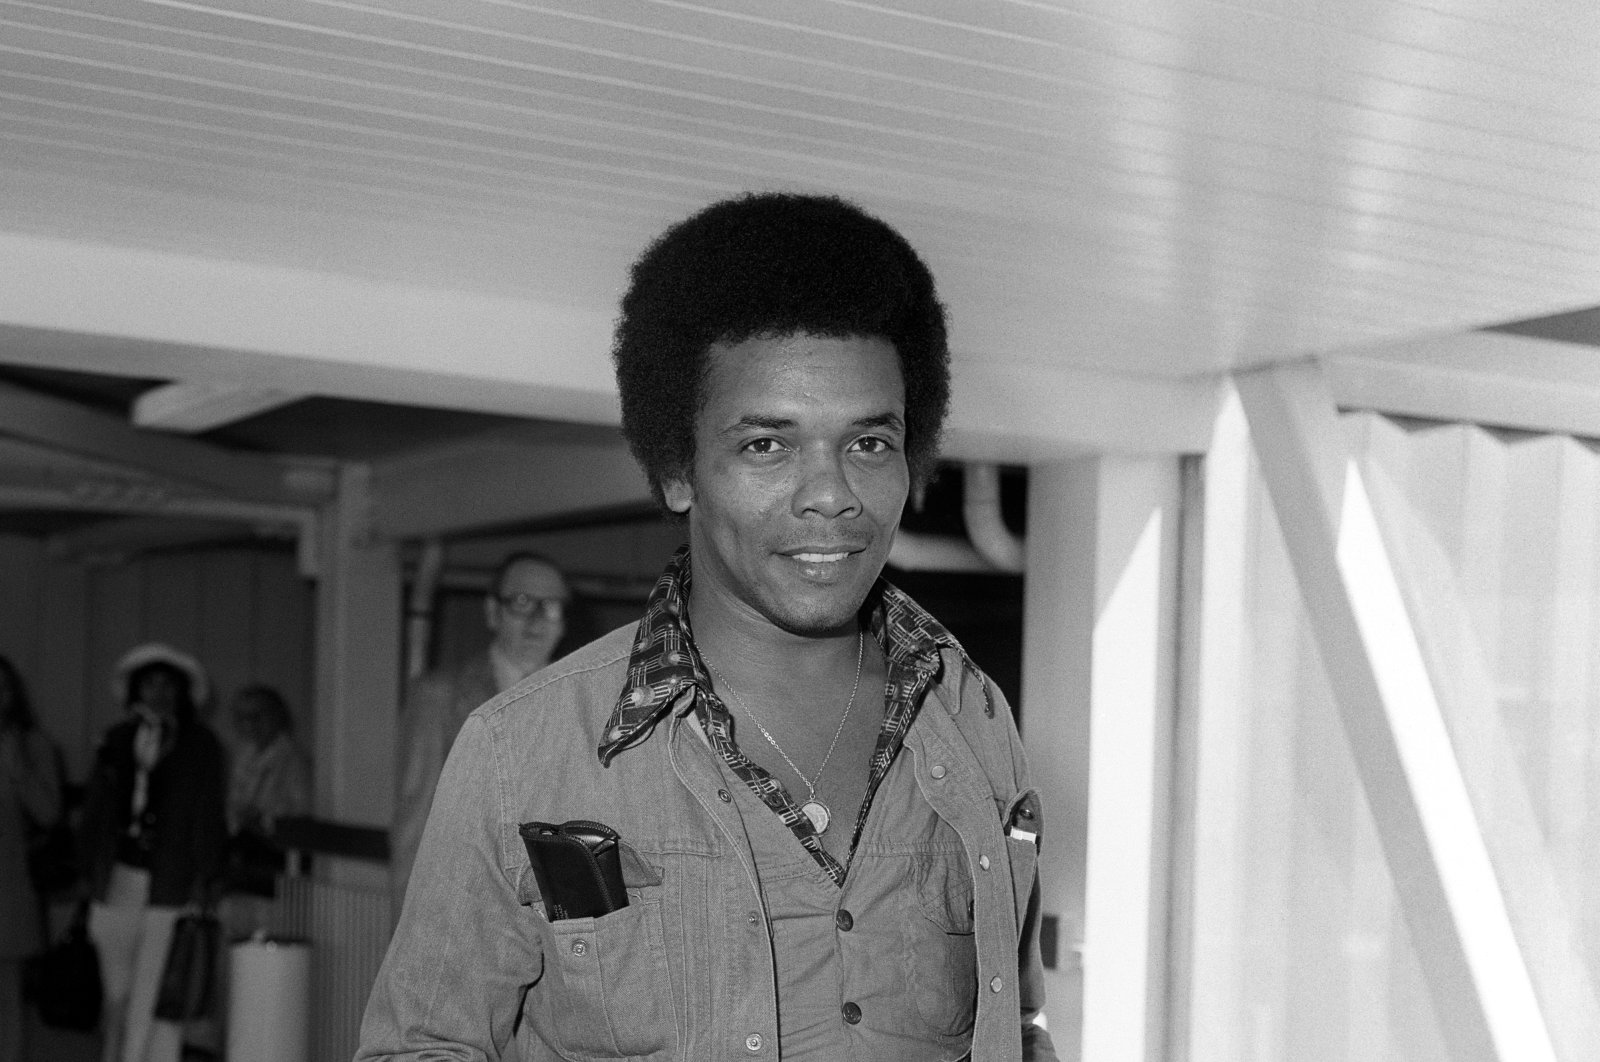 American singer Johnny Nash arrives at Heathrow Airport in London, Britain, after a flight from the U.S. in 1975. (Reuters Photo)